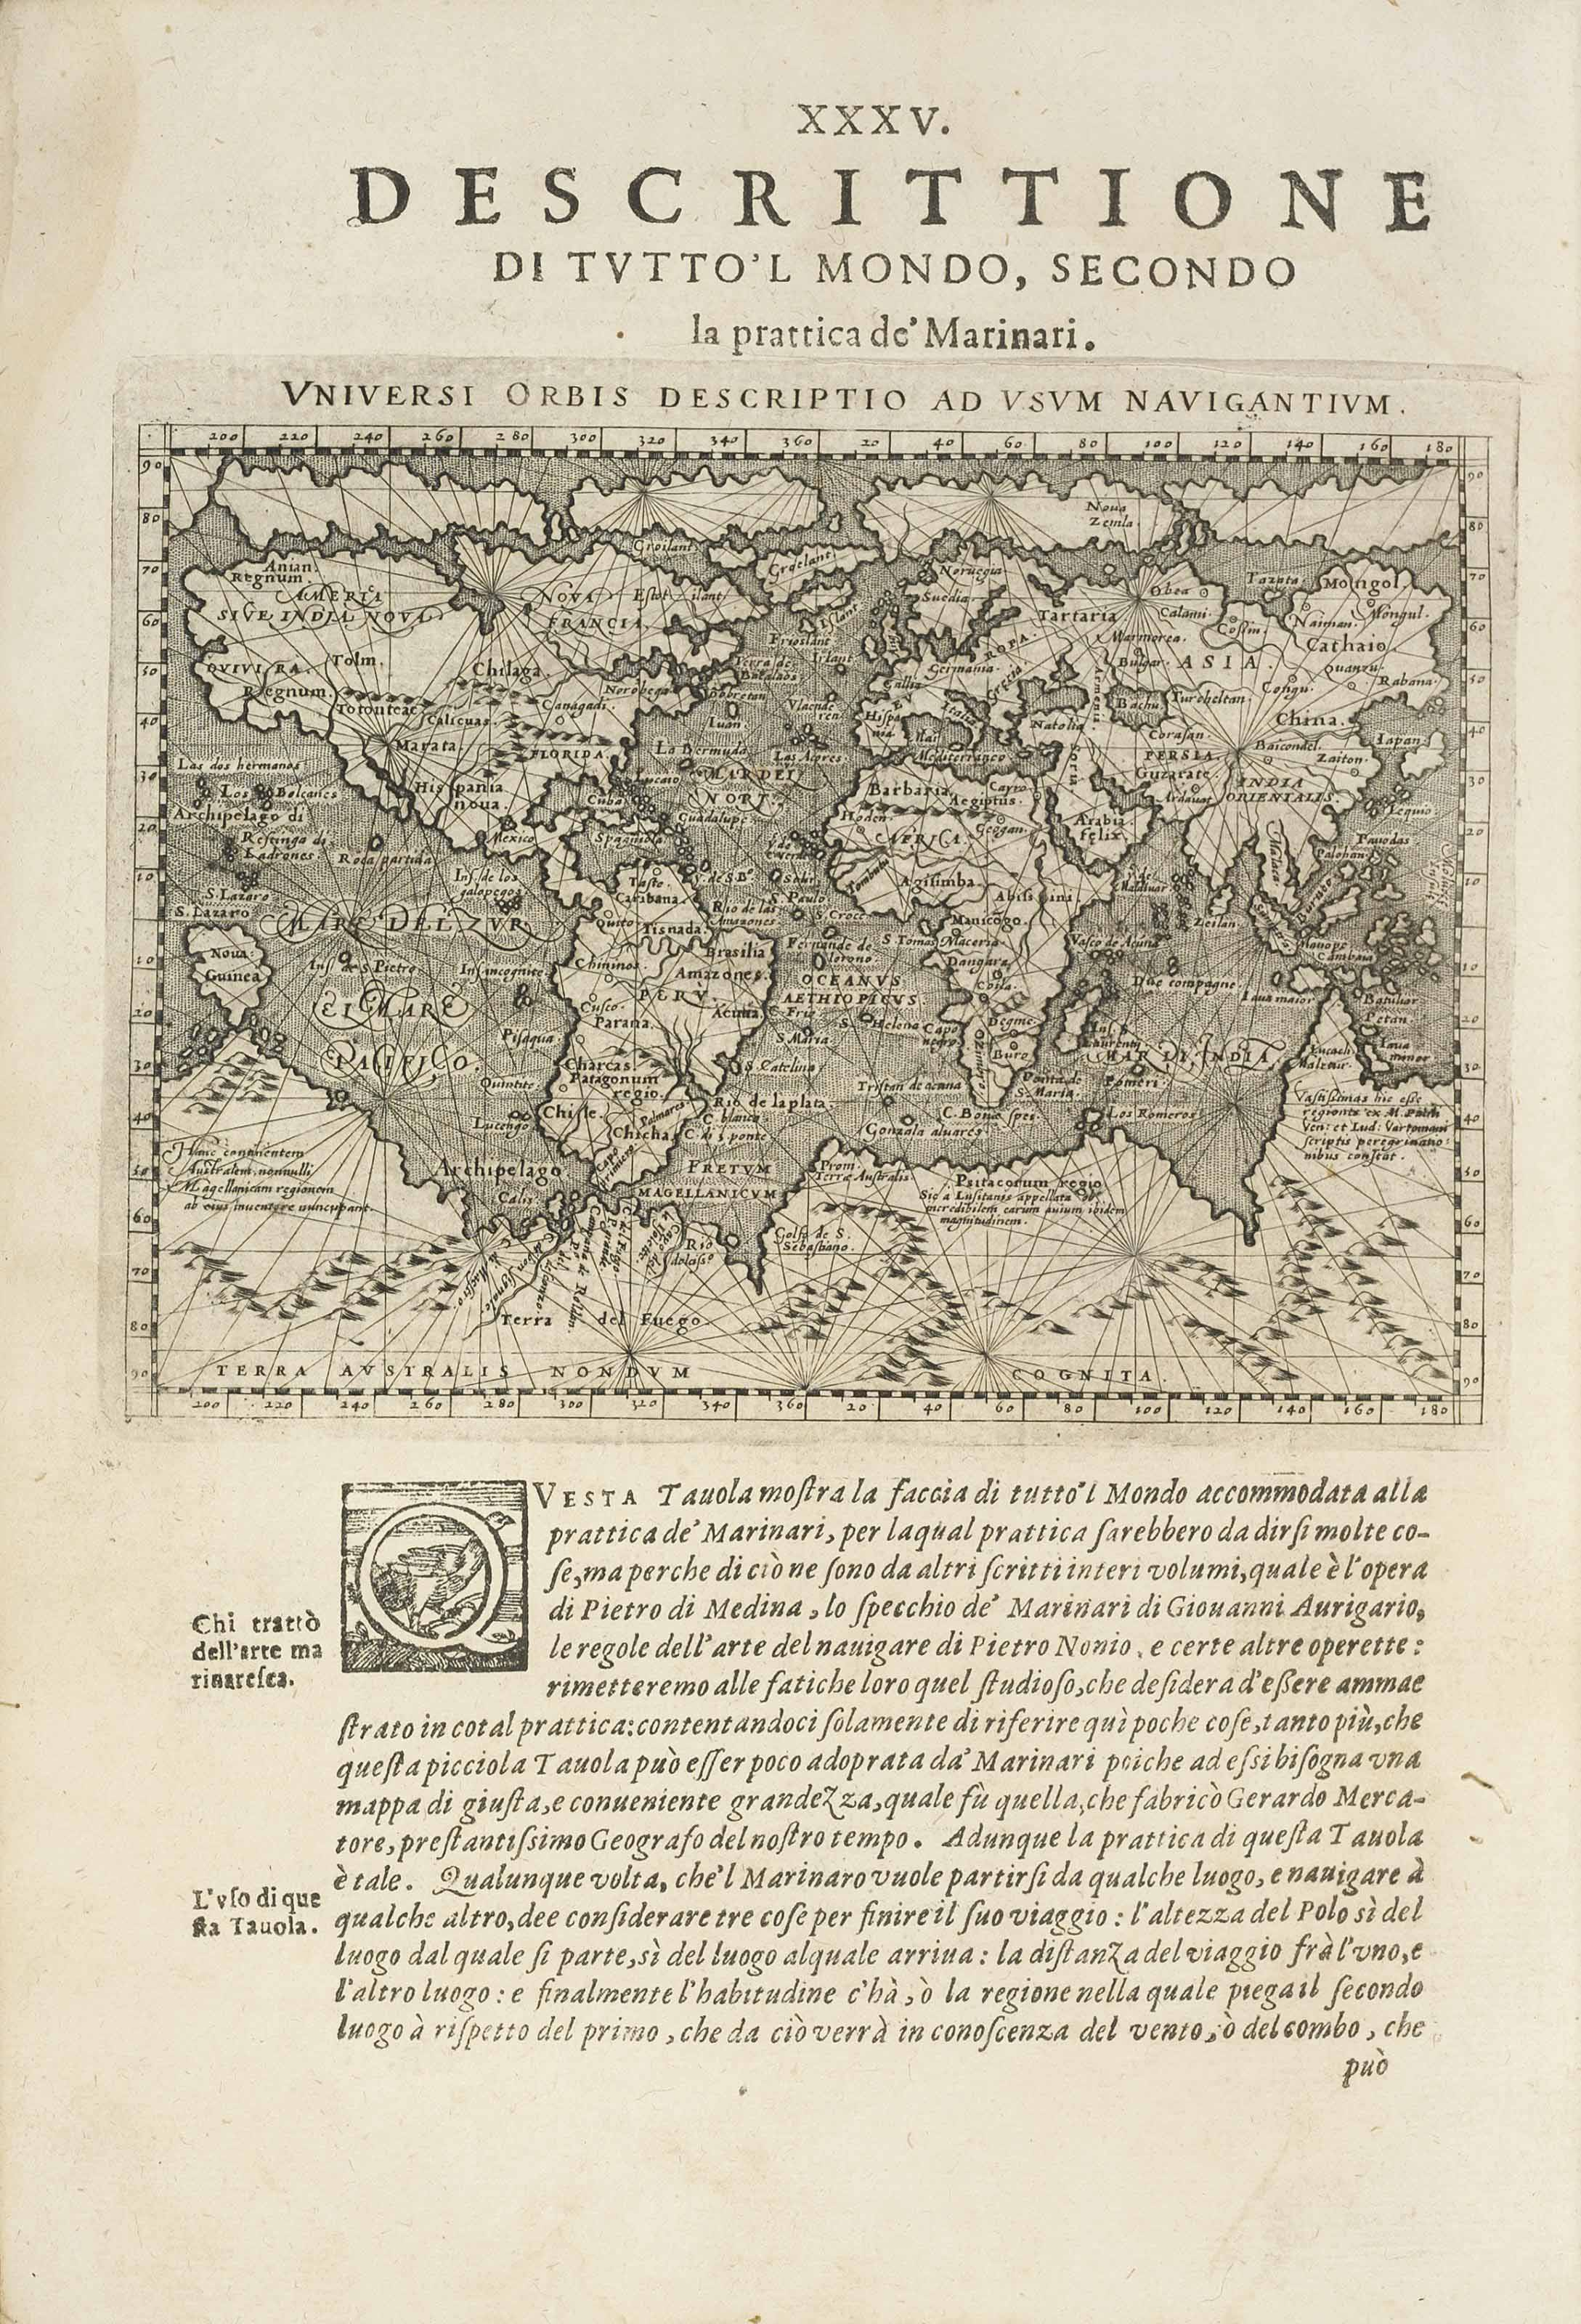 PTOLEMAEUS, Claudius (c.100-c.170). Geografia cioé descrittione universale della terra. Padua: Paolo and Francesco Galignani, 1621-1620. 2 parts in one volume, 2° (296 x 210mm). Engraved devices on titles, 63 half-page maps and woodcuts. (Lacking full-page engraved map, occasional browning and waterstaining, a few clean tears sometimes affecting text.) Modern vellum, manuscript title on spine (lightly bowed, some stains).